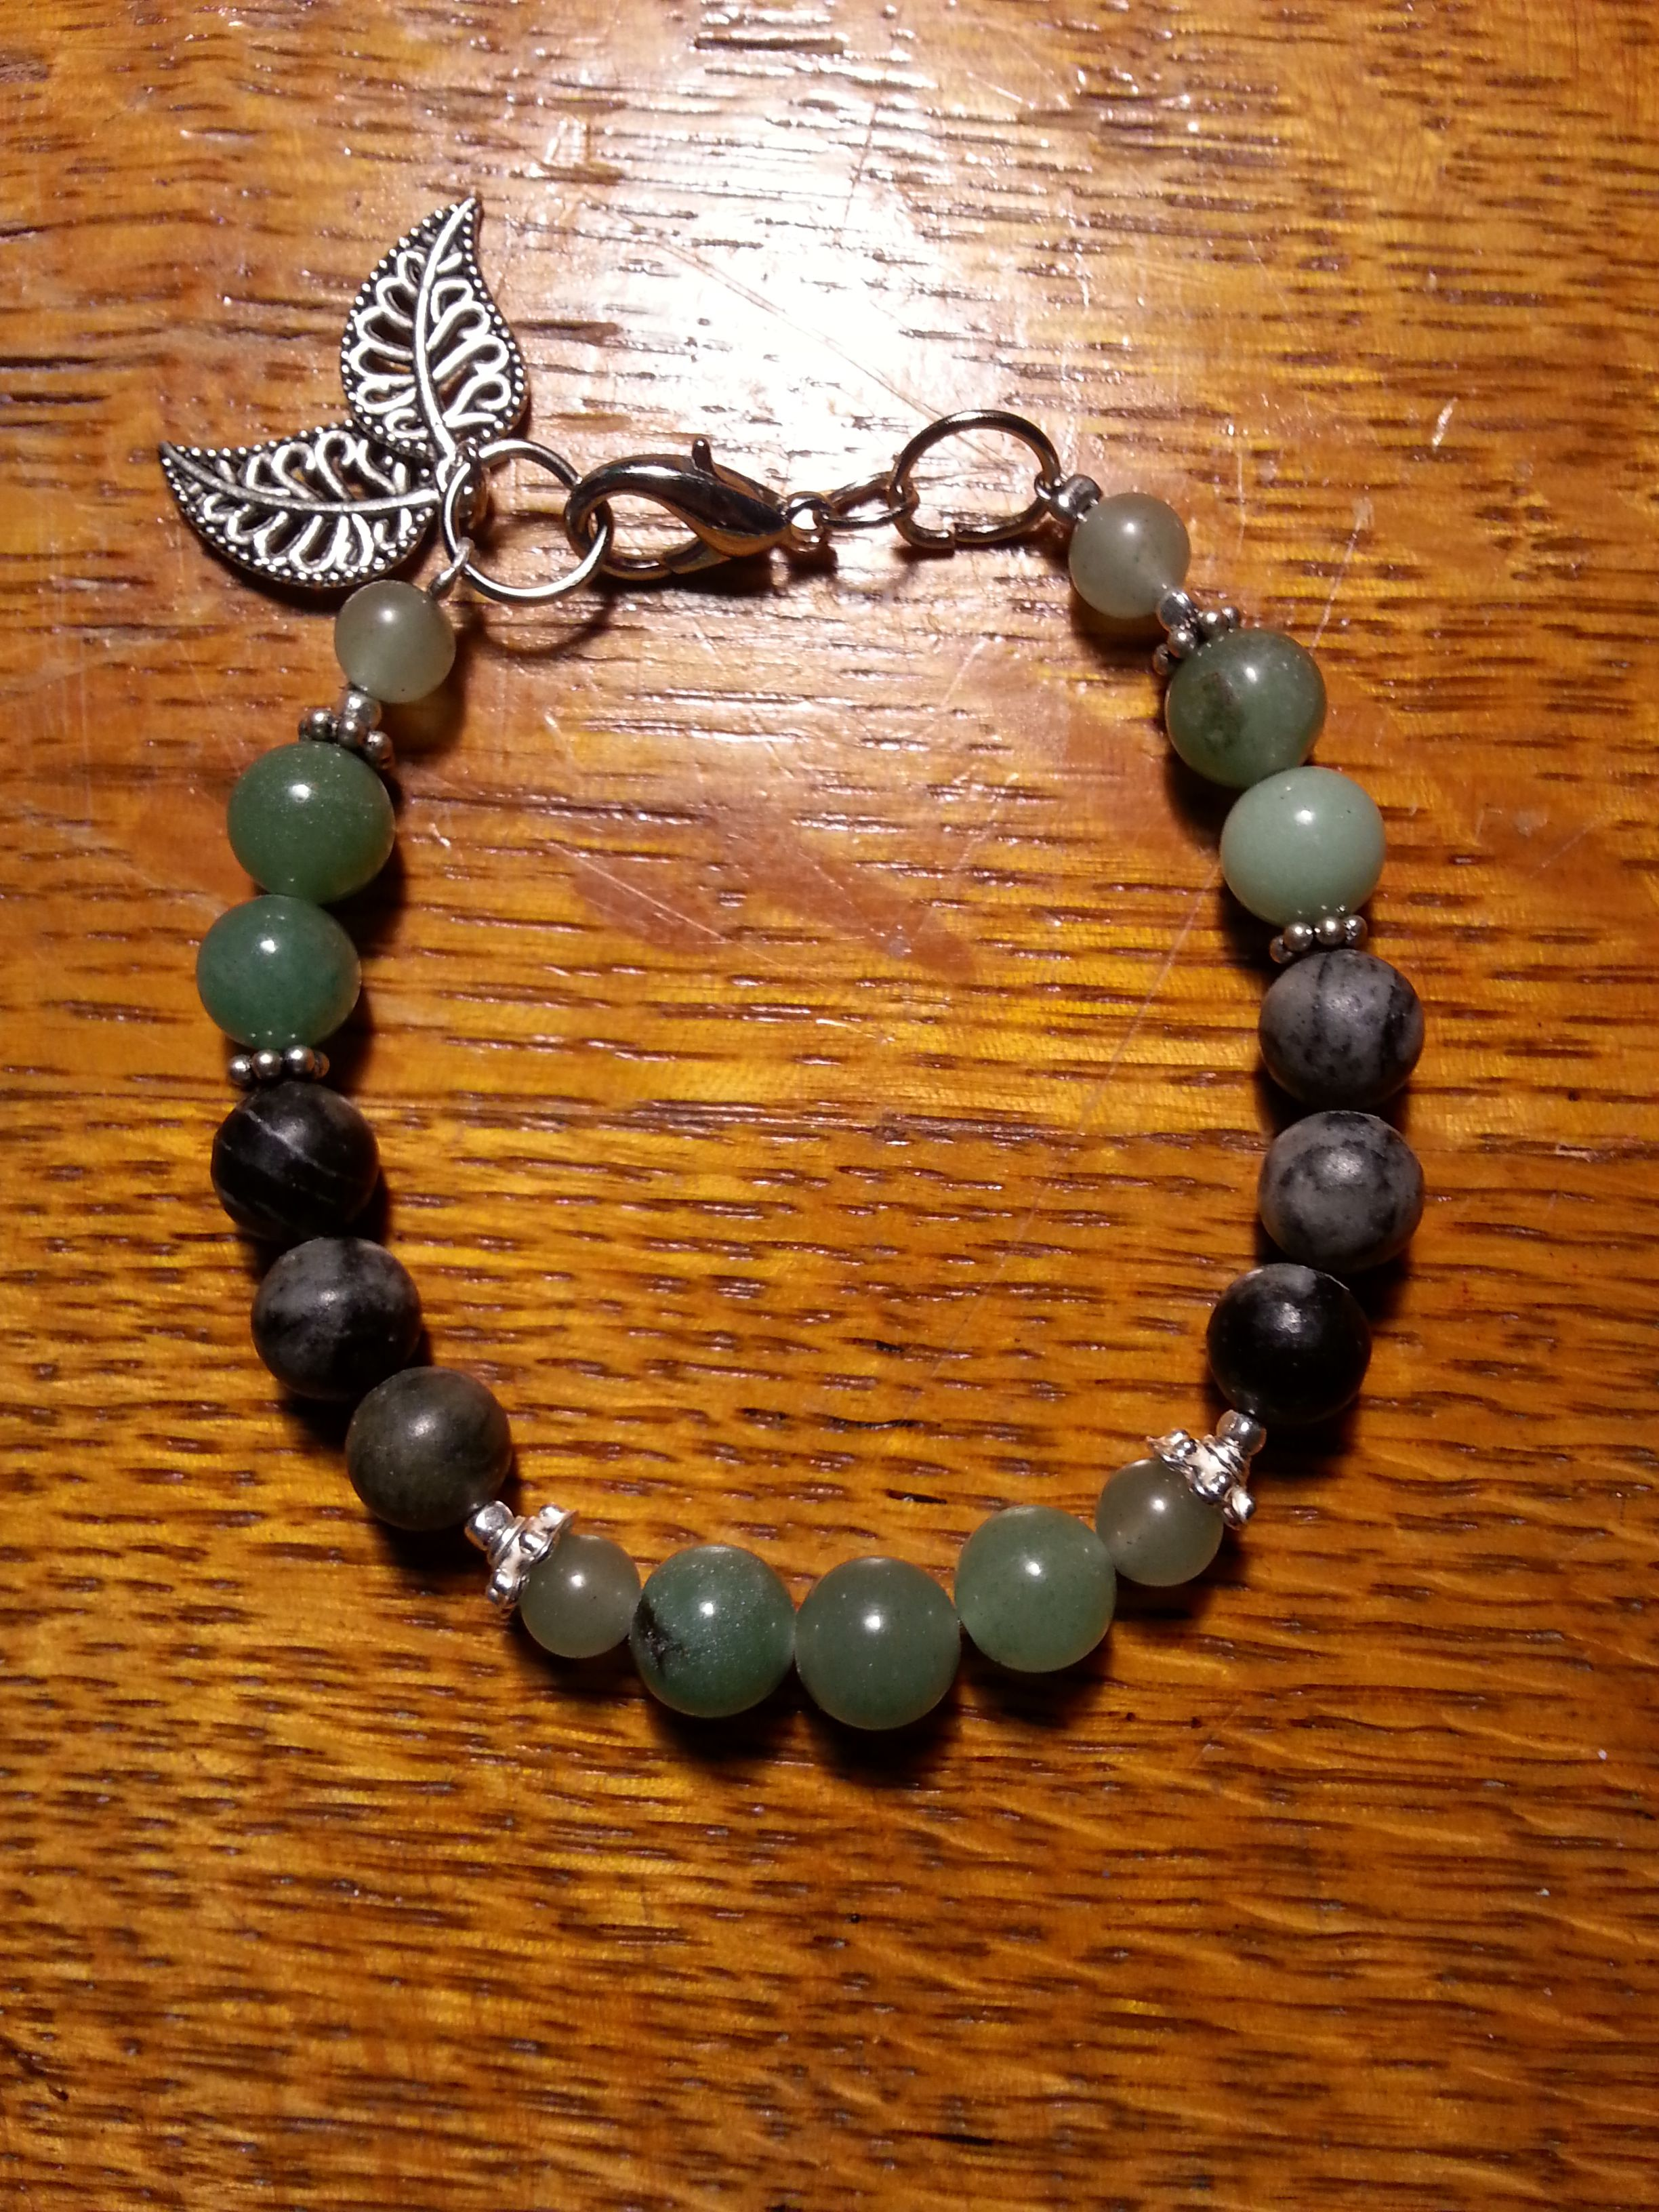 Jade And Charcoal Bracelet Made Out Of Stone And Glass